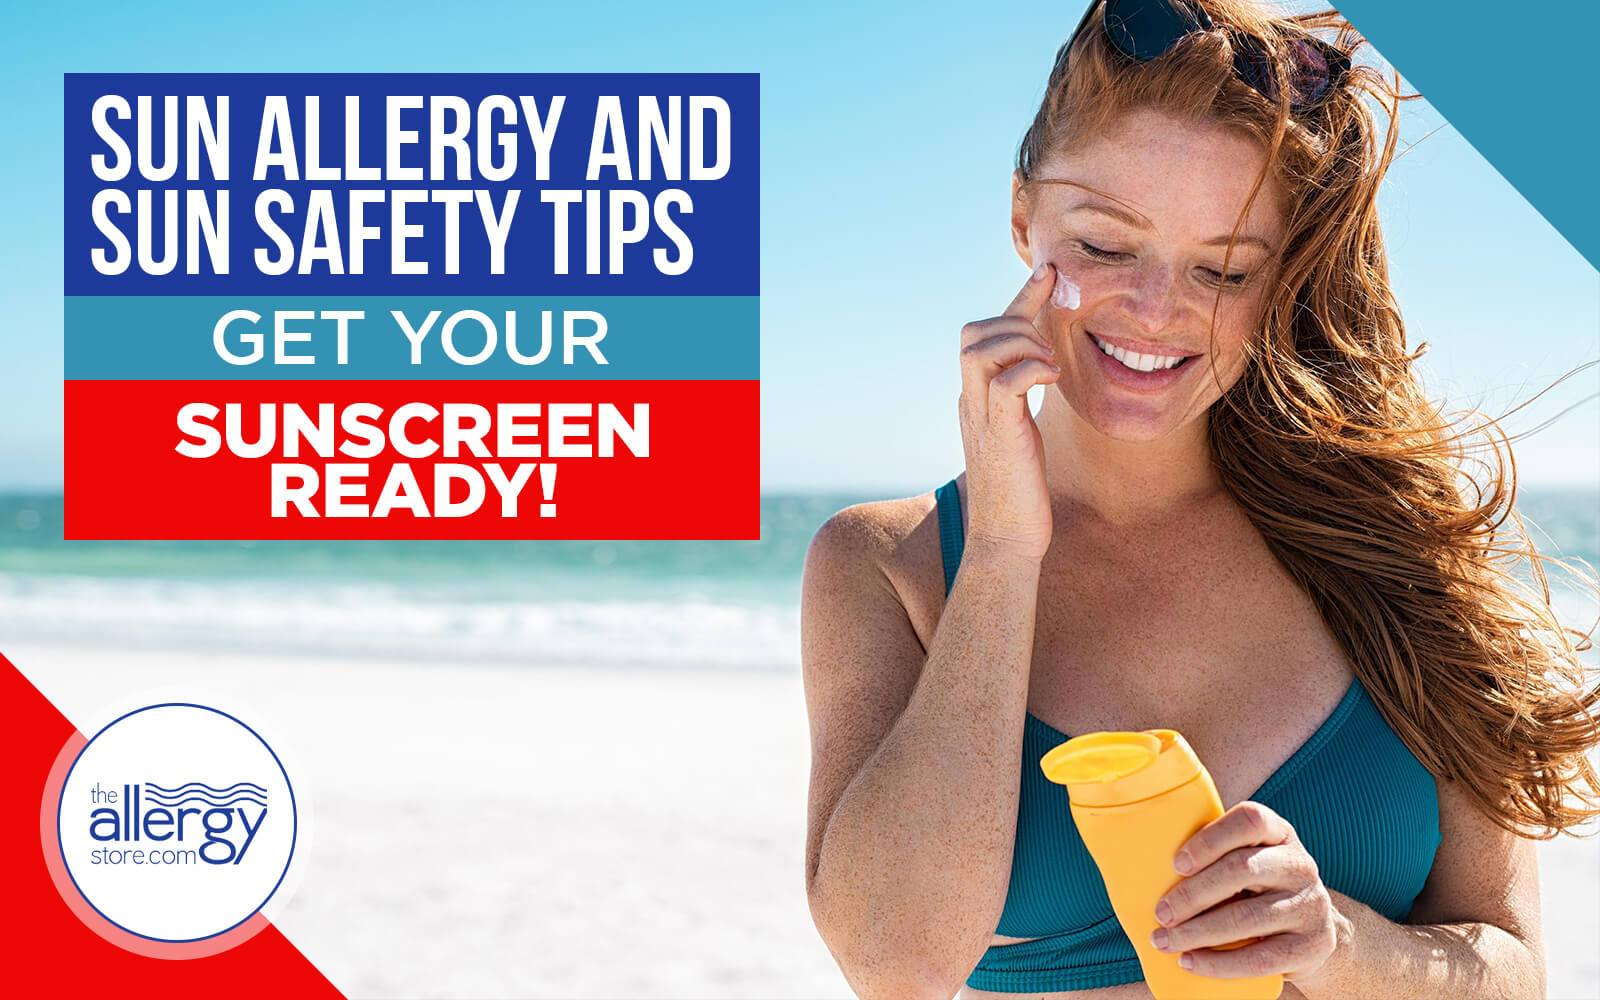 Sun Allergy and Sun Safety Tips | Get Your Sunscreen Ready!